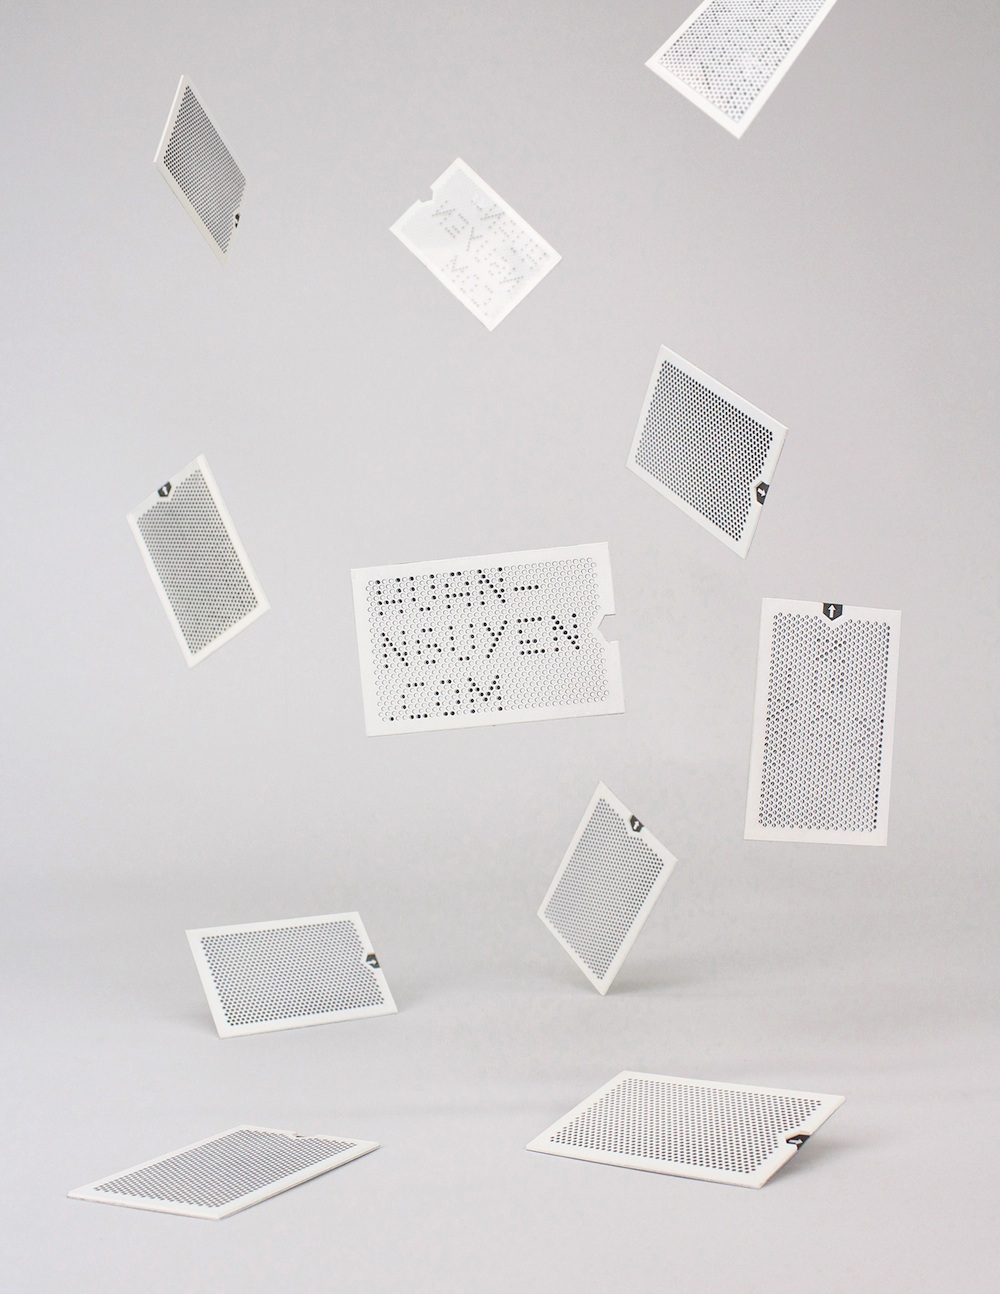 han nguyen business card